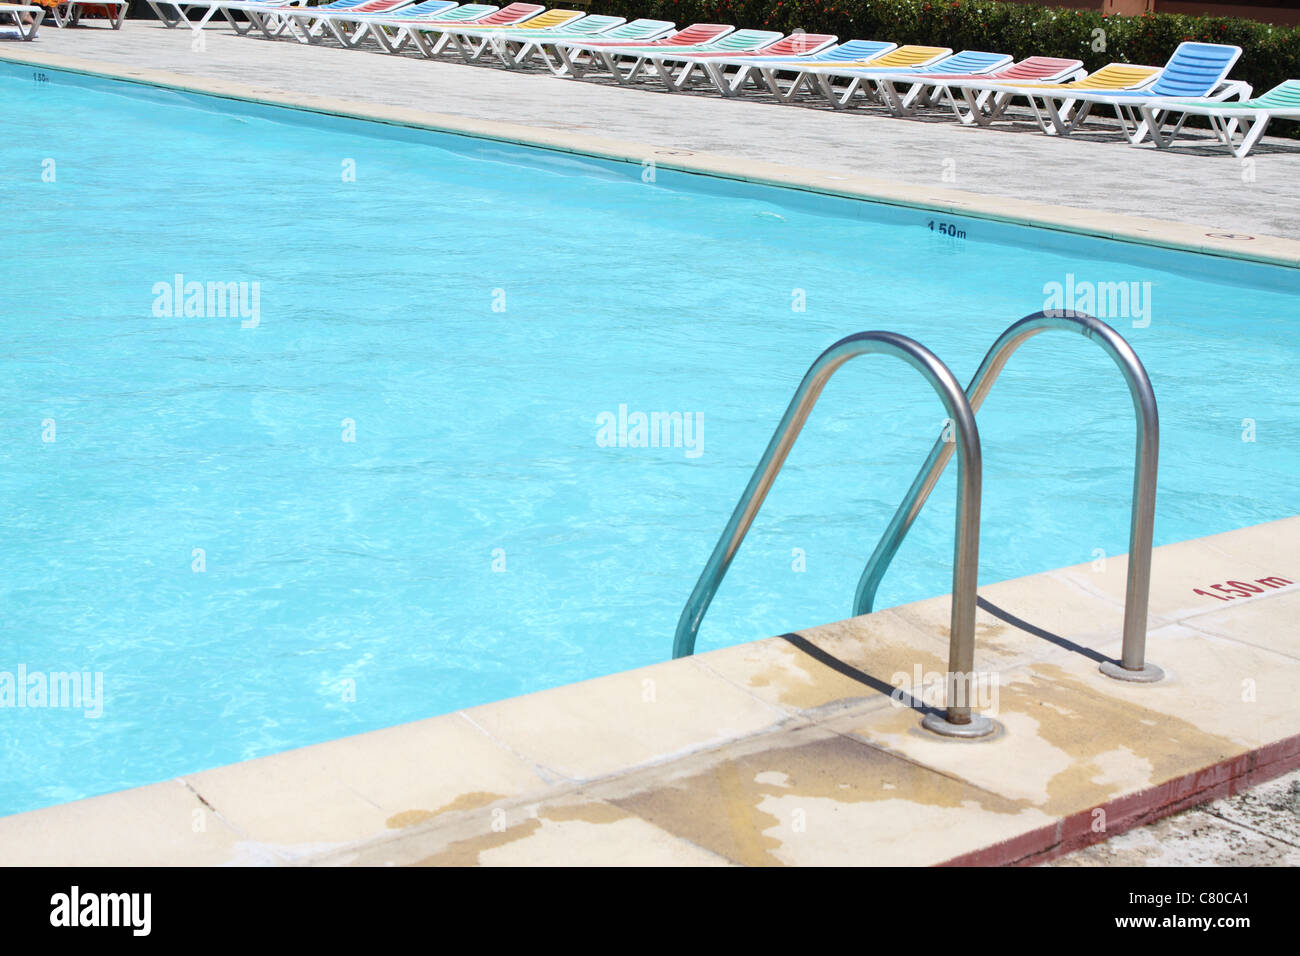 Handrail steps leading into a swimming pool - Stock Image